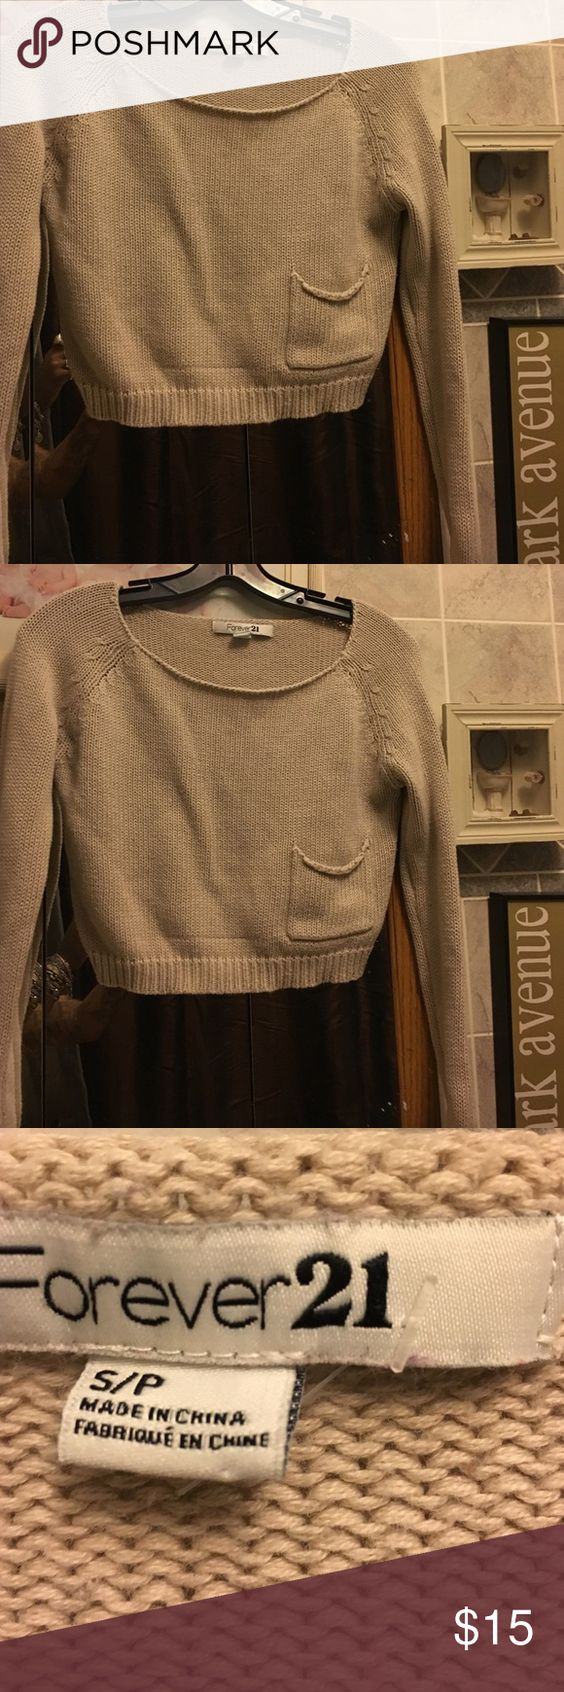 Forever 21 sweater It's pre owned in great condition!! It's cropped!!! Light taupe color. Forever 21 Sweaters Crew & Scoop Necks